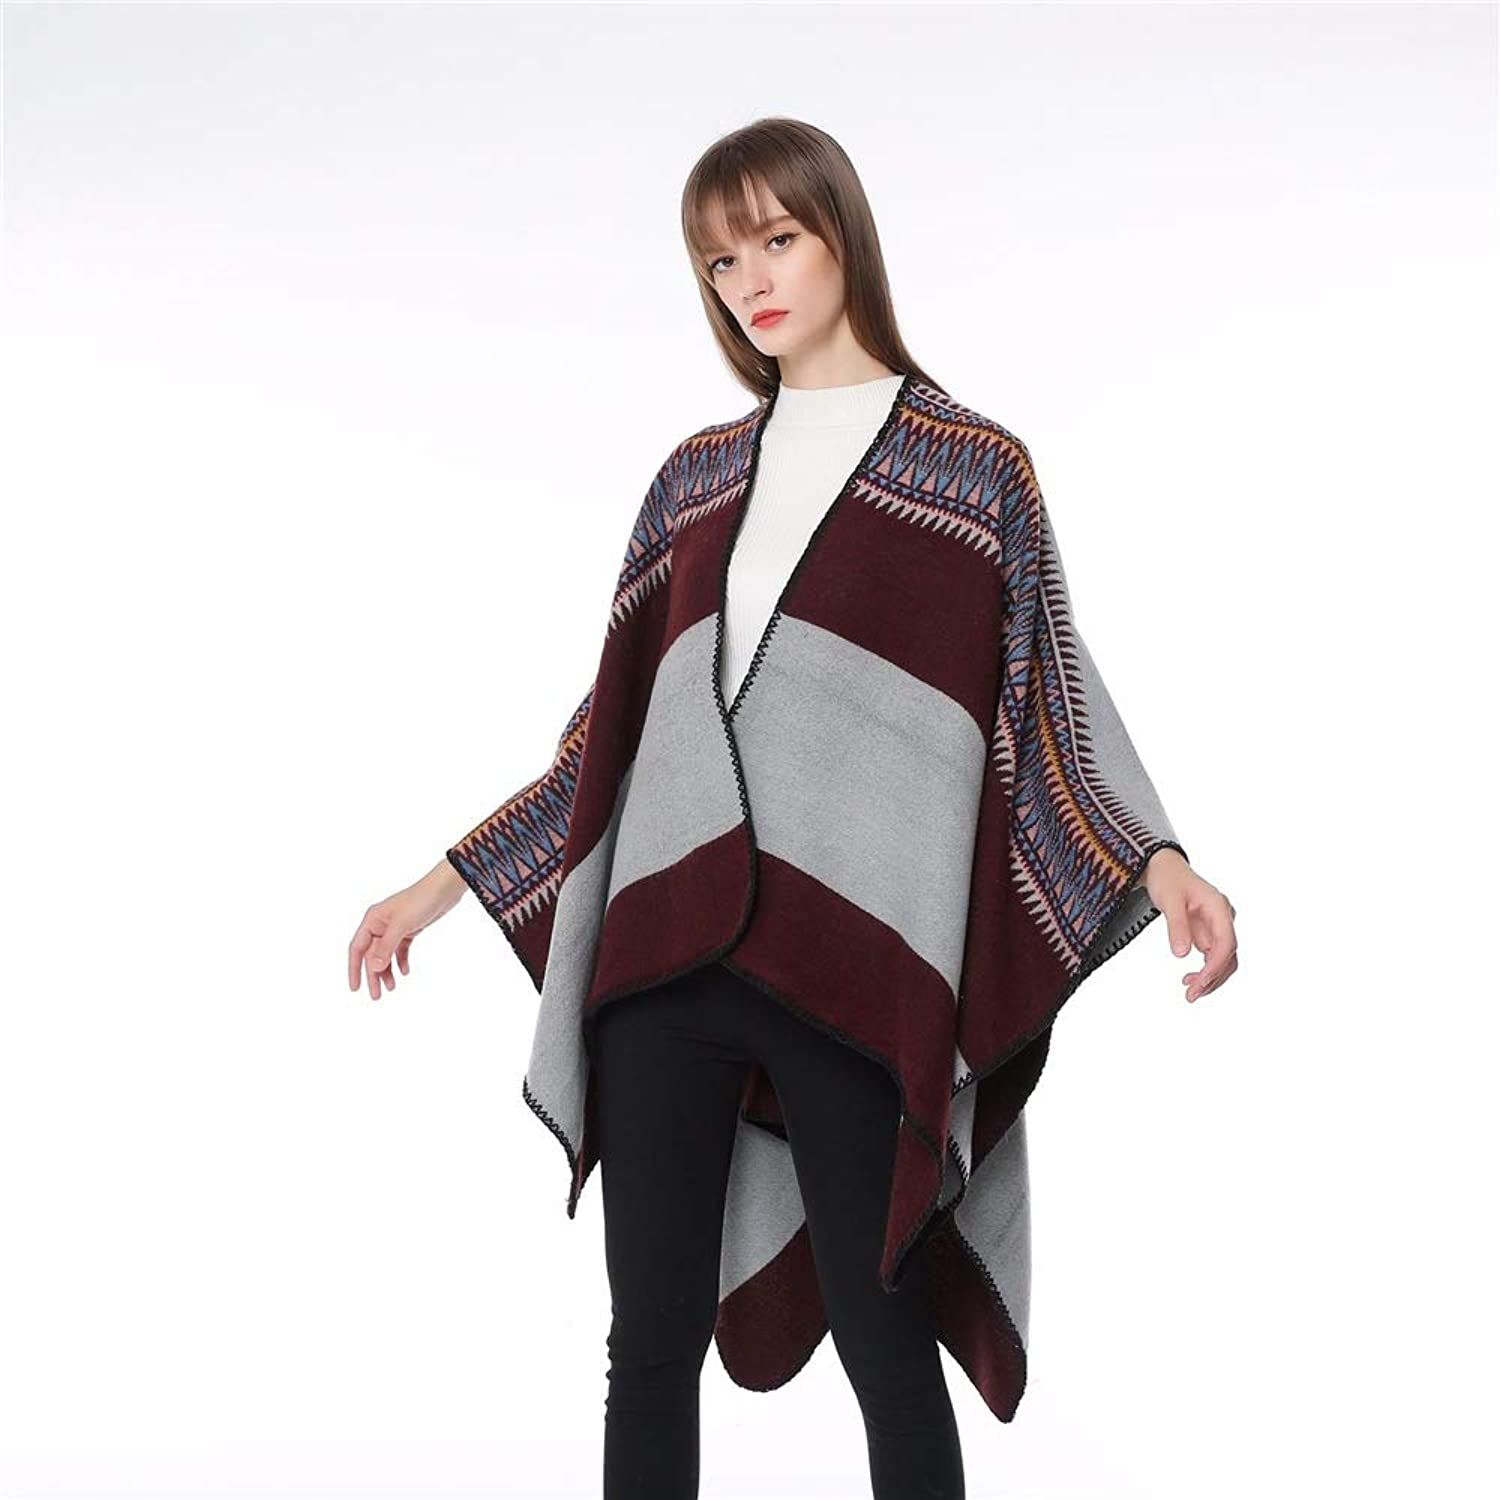 Womens Cape Poncho Coat Women's Simple Striped Florals to Increase Warm Slit Shawl for Daily Wear Cardigan Cloak Jacket for Winter Cocktail (color   Wine red)